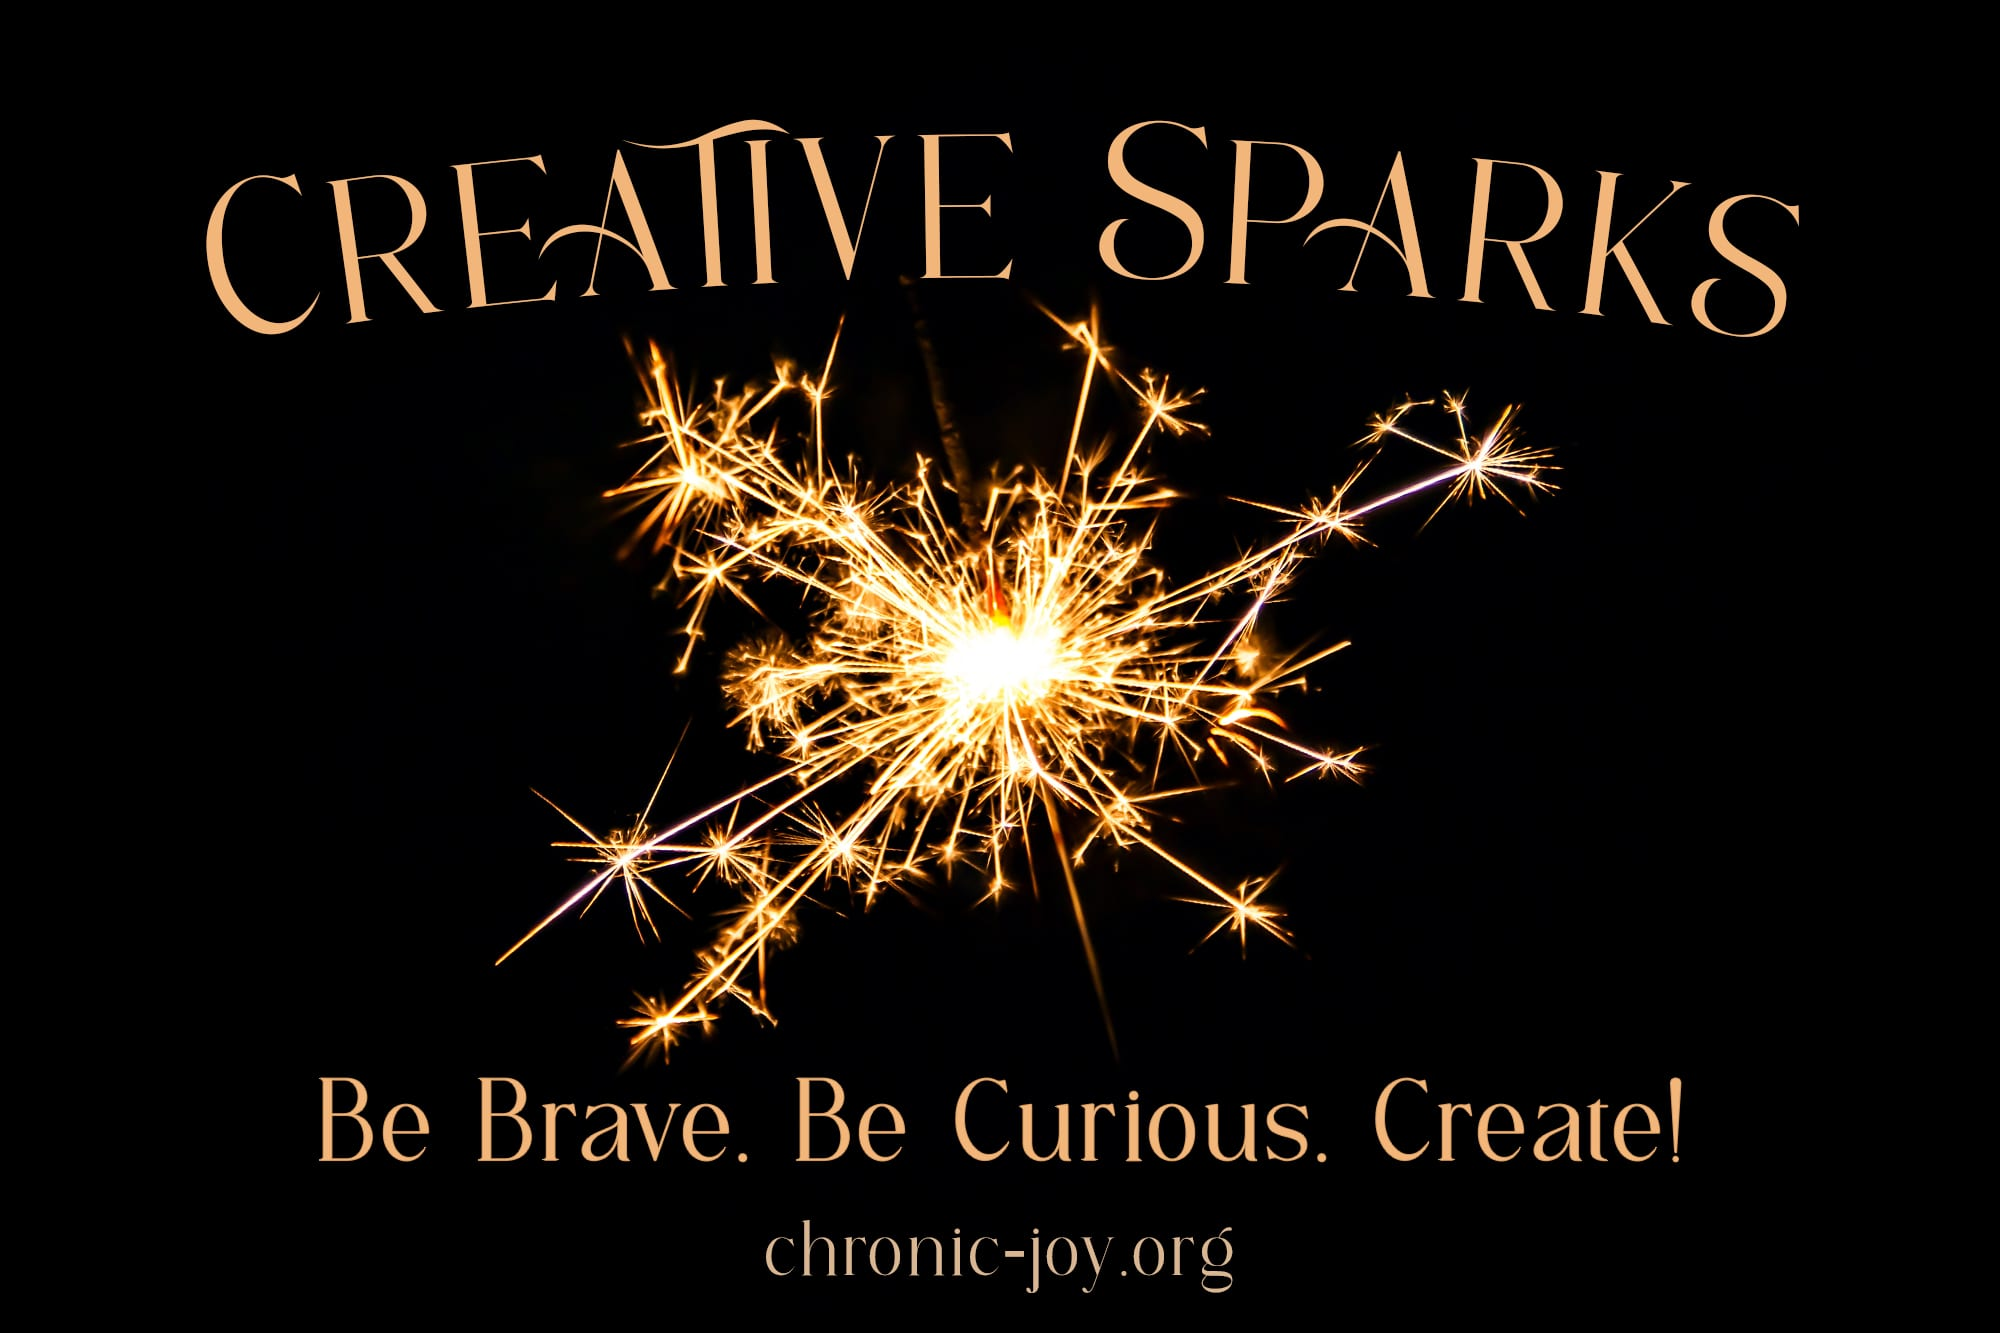 Creative Sparks • Be Brave. Be Curious. Create!